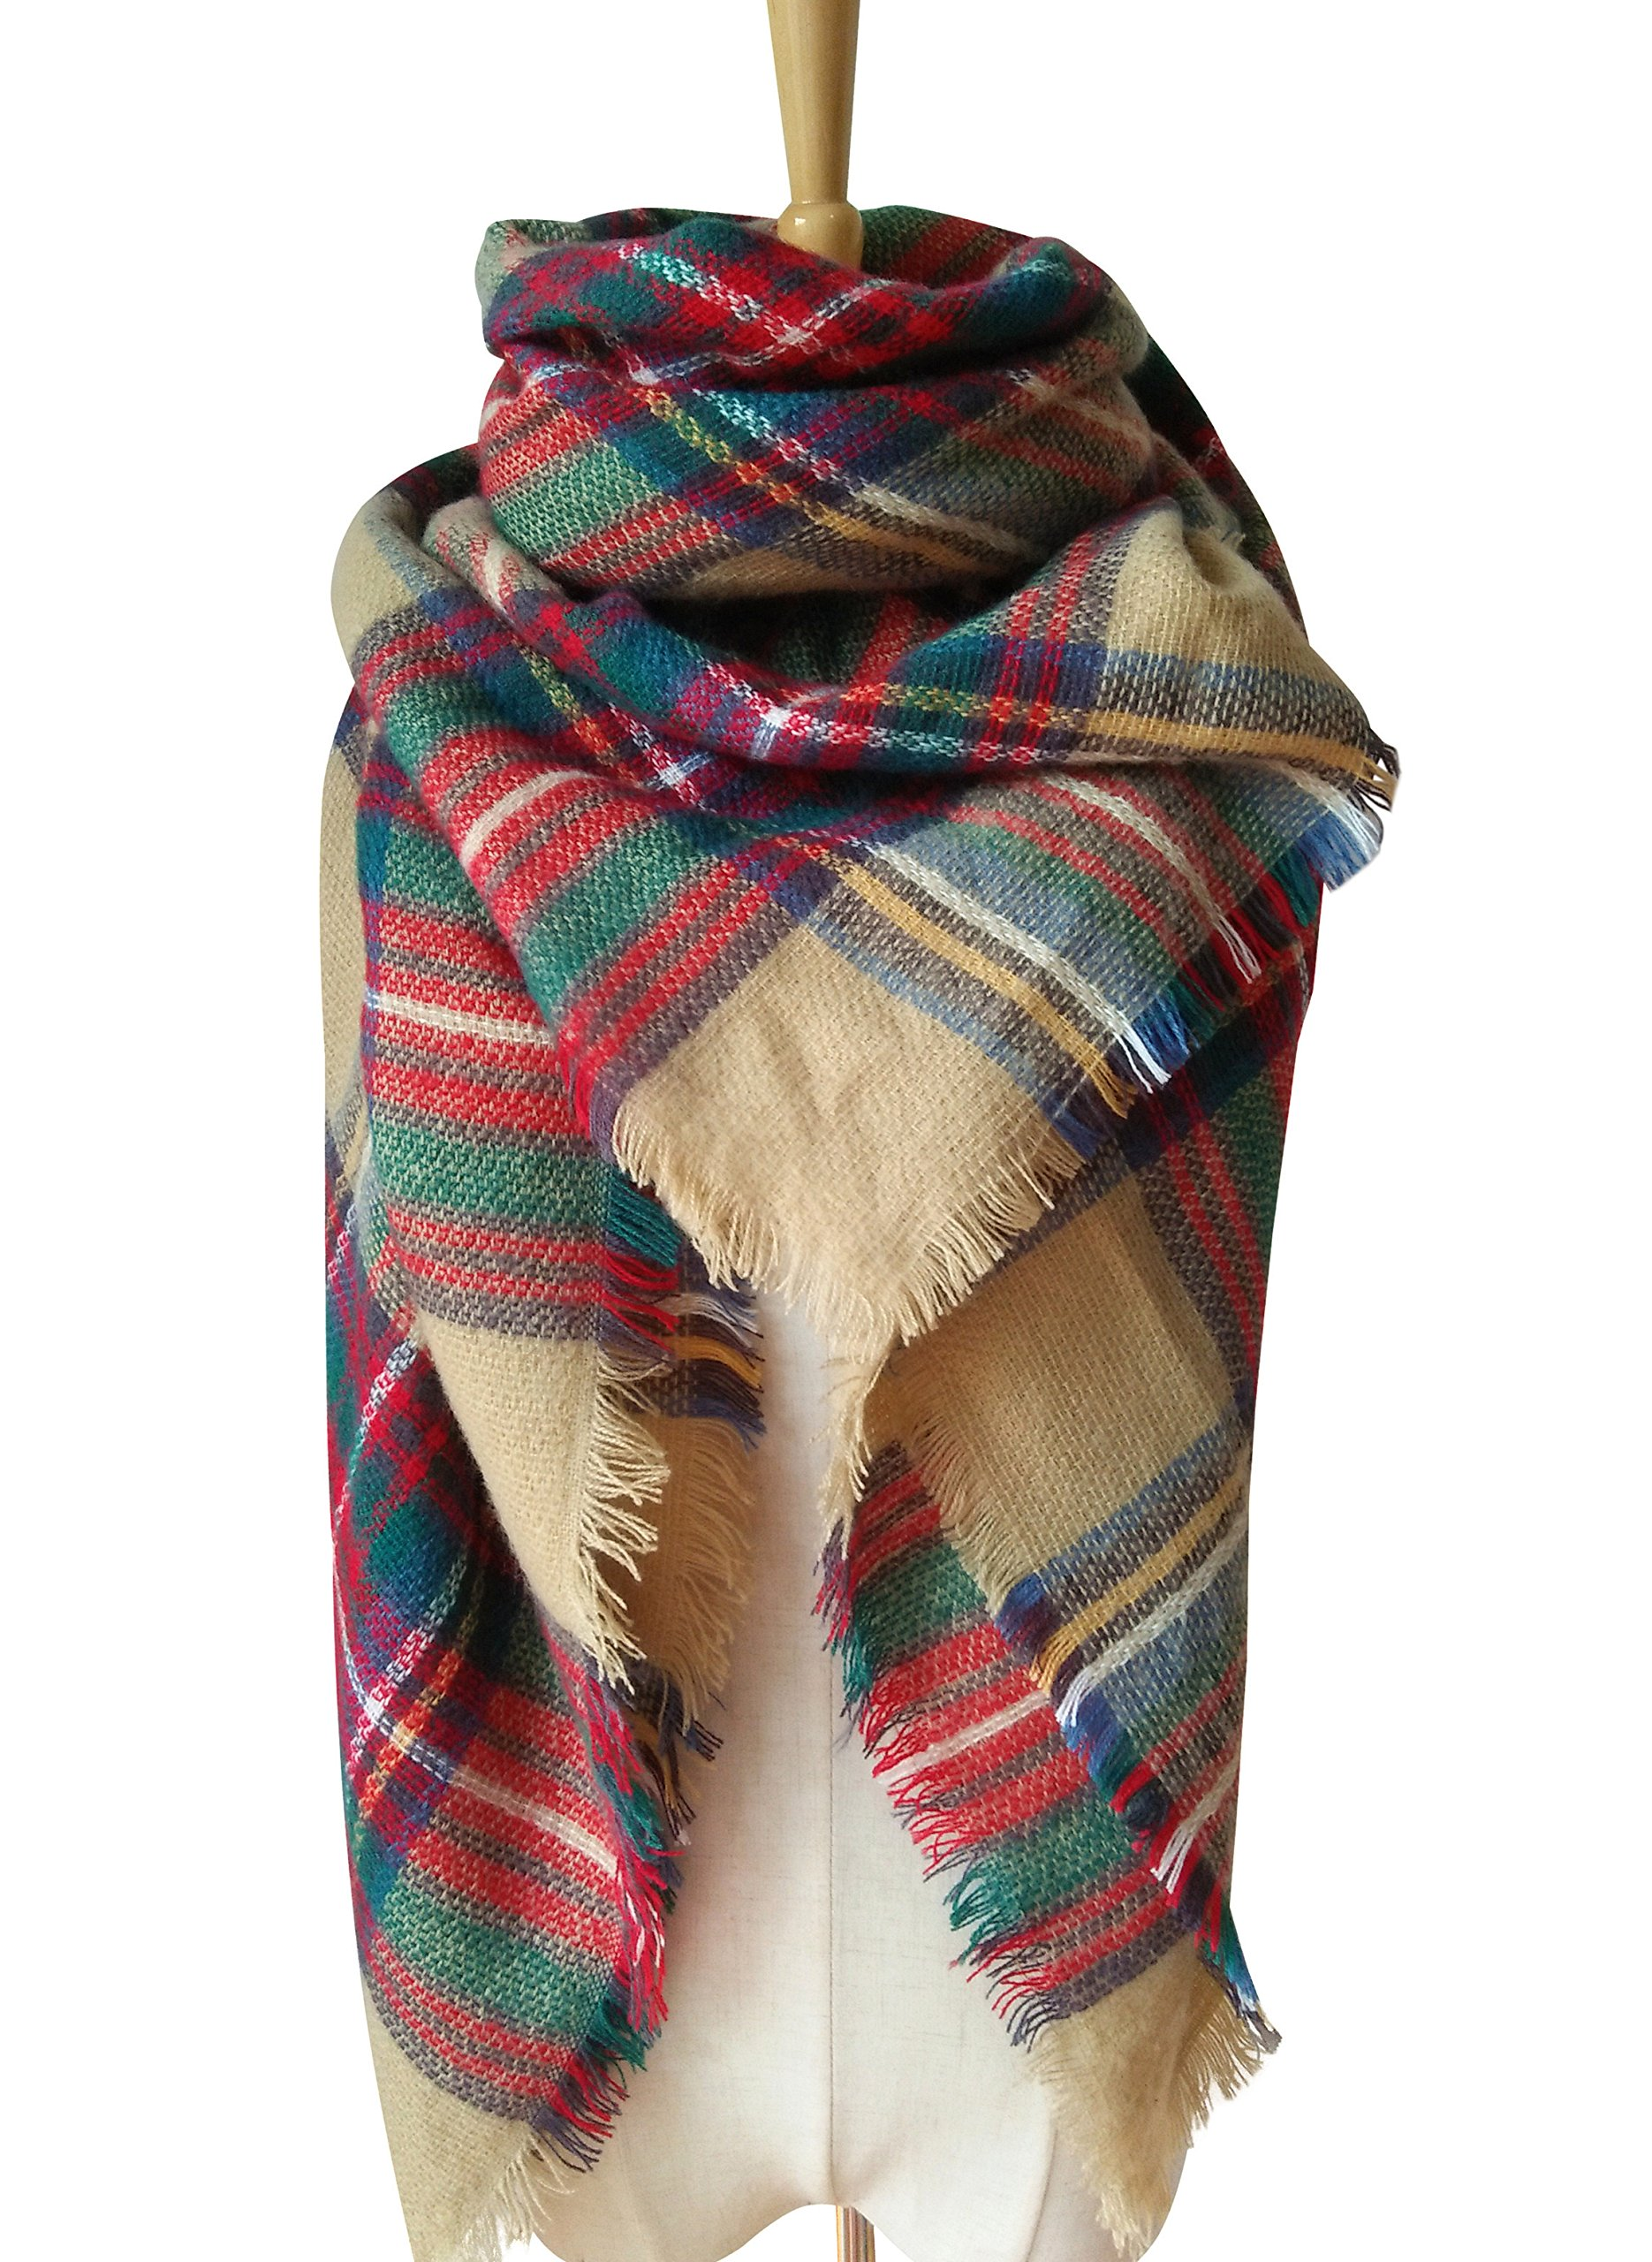 MOTINE Tartan Blanket Scarf Stylish Winter Warm Pashmina Wrap Shawl for Women (Khaki)